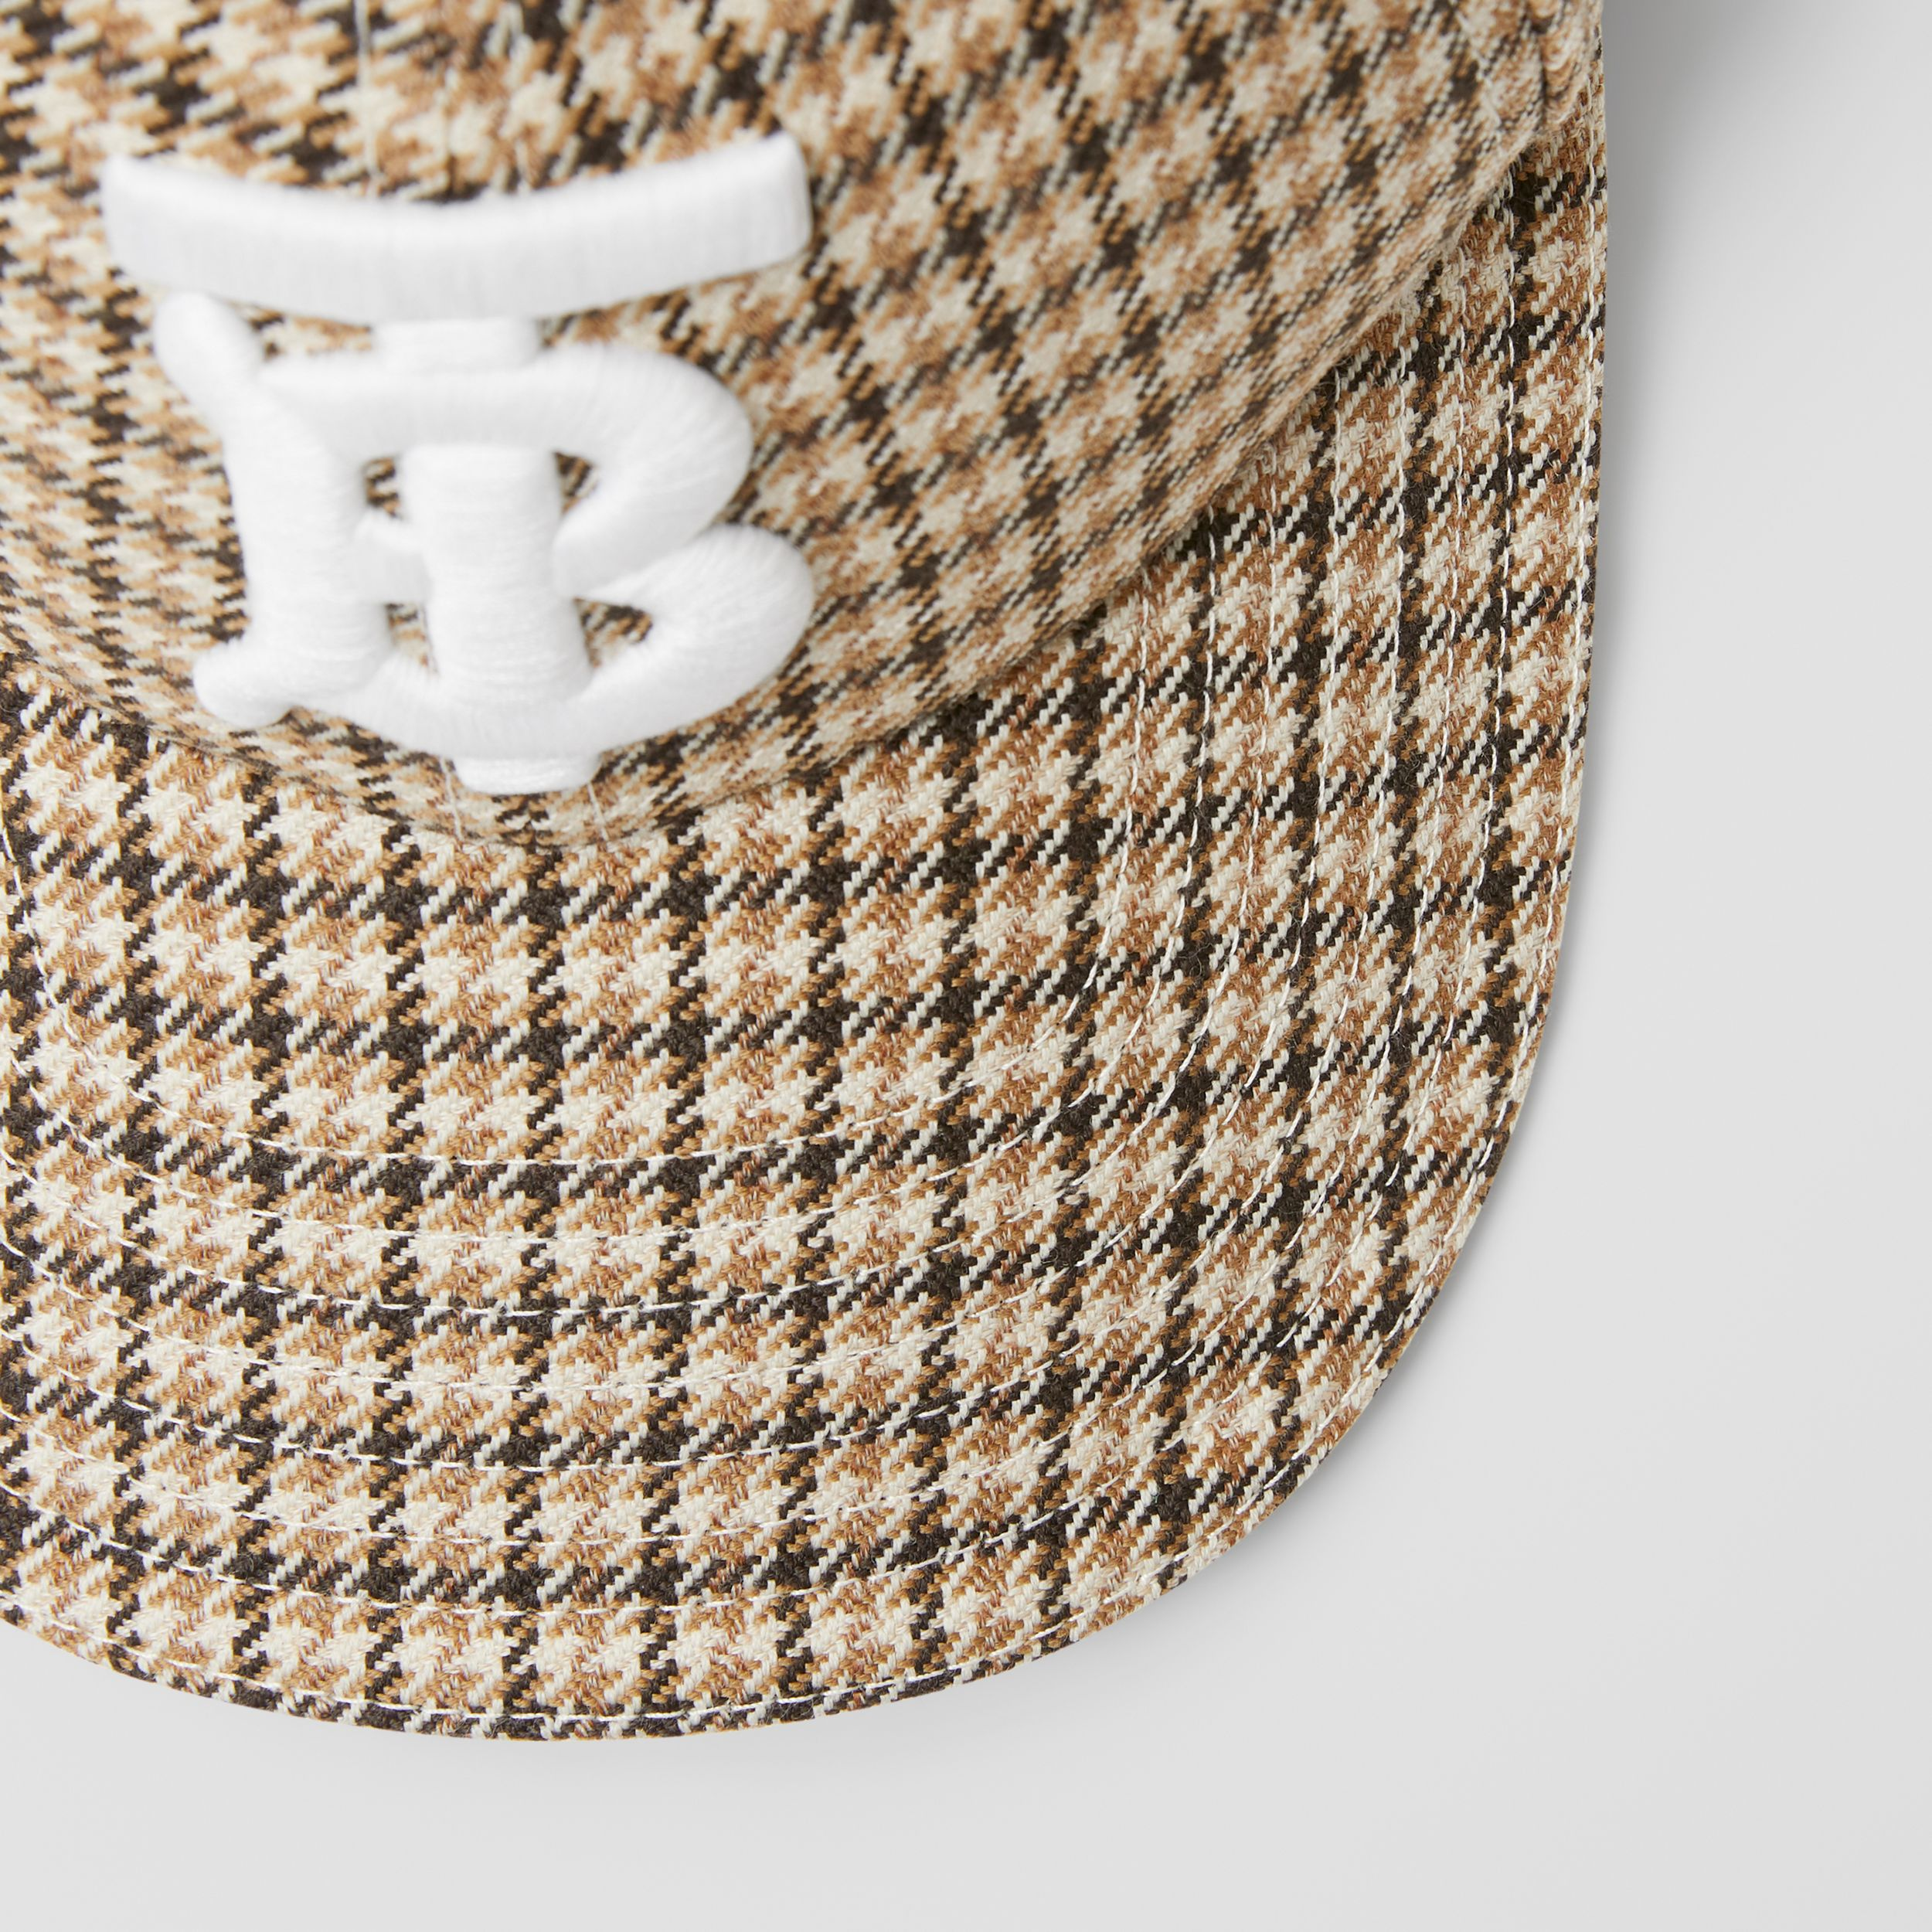 Monogram Motif Houndstooth Check Baseball Cap in Fawn | Burberry - 2